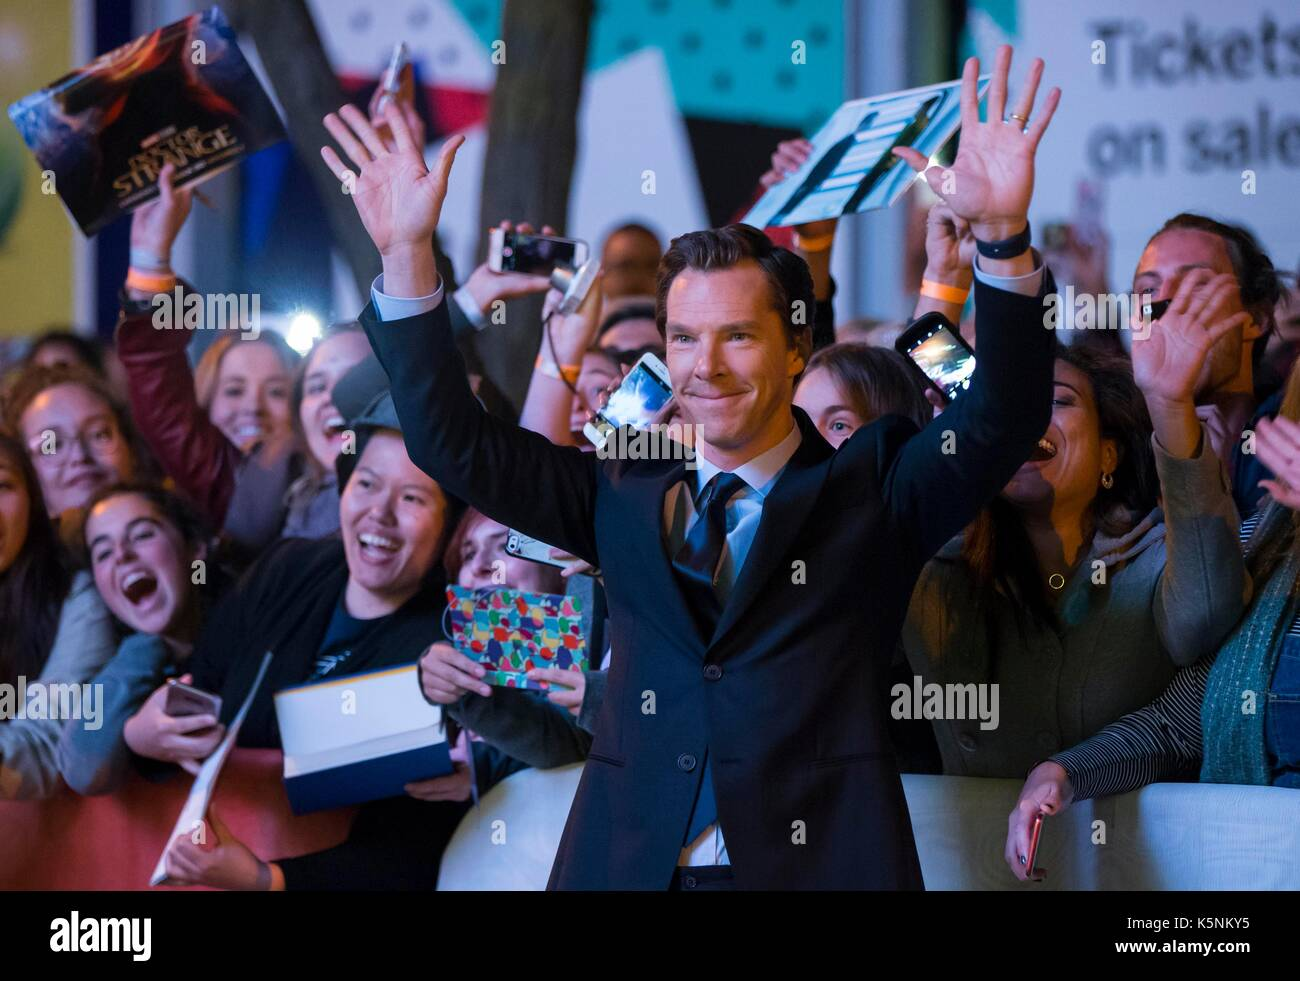 Toronto, Canada. 9th Sep, 2017. Actor Benedict Cumberbatch (front) poses for photos with fans as he attends the world premiere of the film 'The Current War' at Princess of Wales Theatre during the 2017 Toronto International Film Festival in Toronto, Canada, Sept. 9, 2017. Credit: Zou Zheng/Xinhua/Alamy Live News - Stock Image